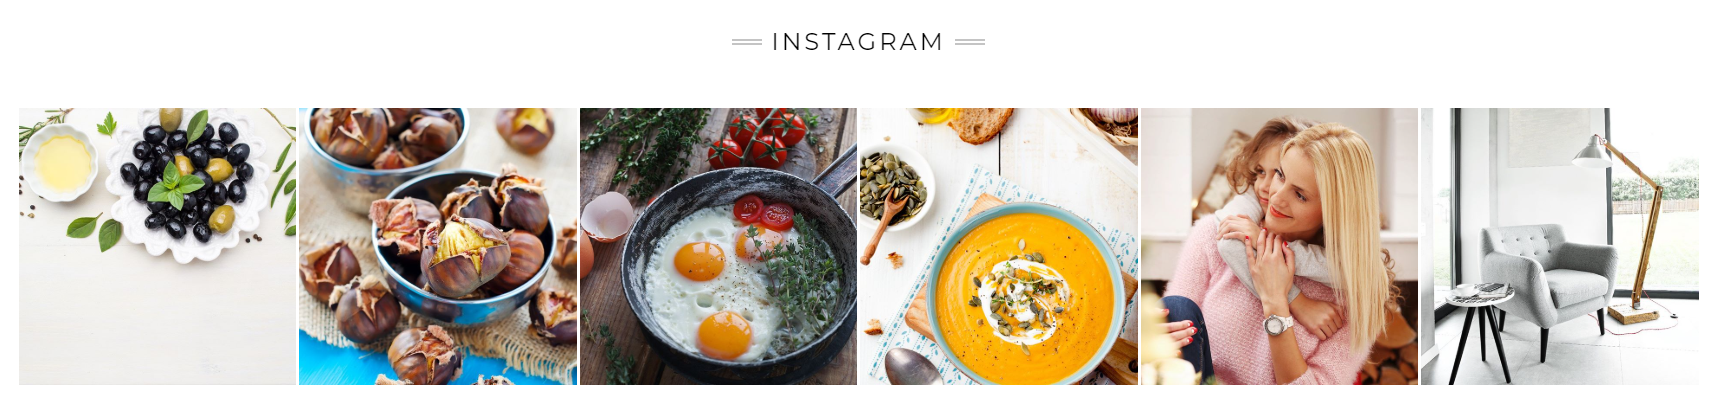 Kale Pro - site footer Instagram feed